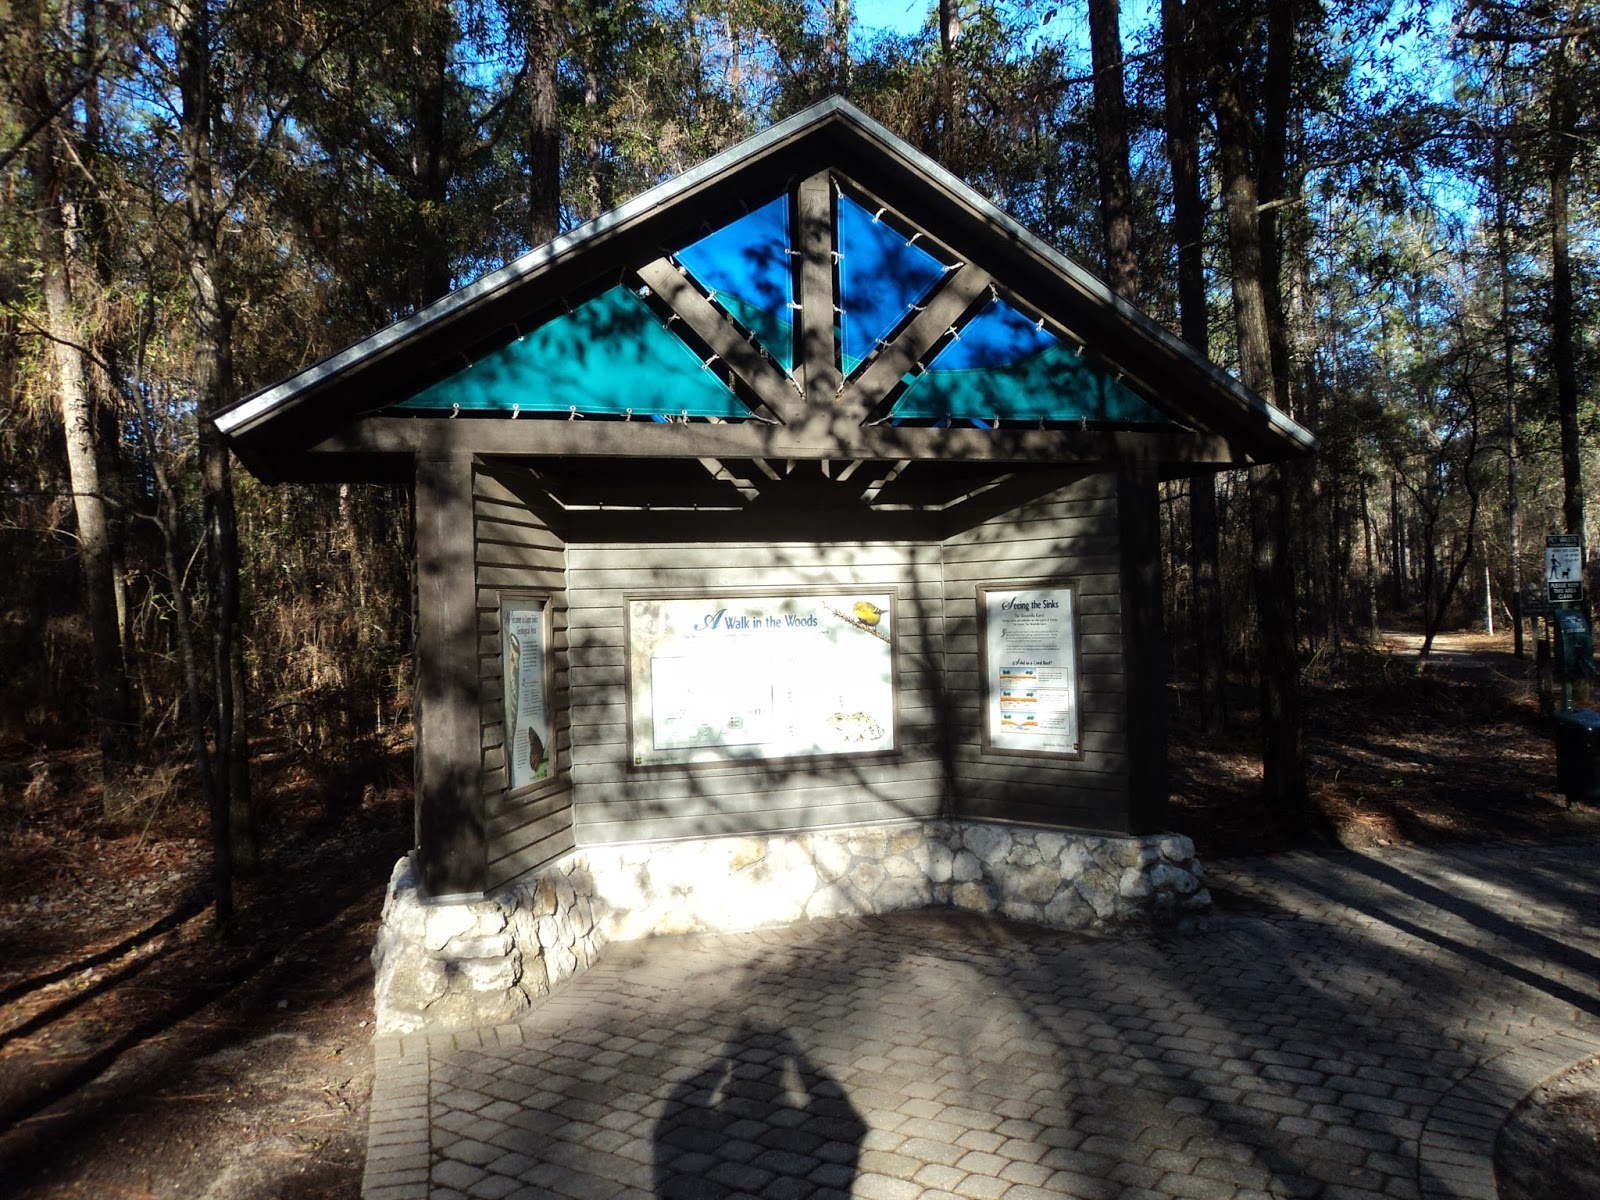 Information Kiosk At Trailhead